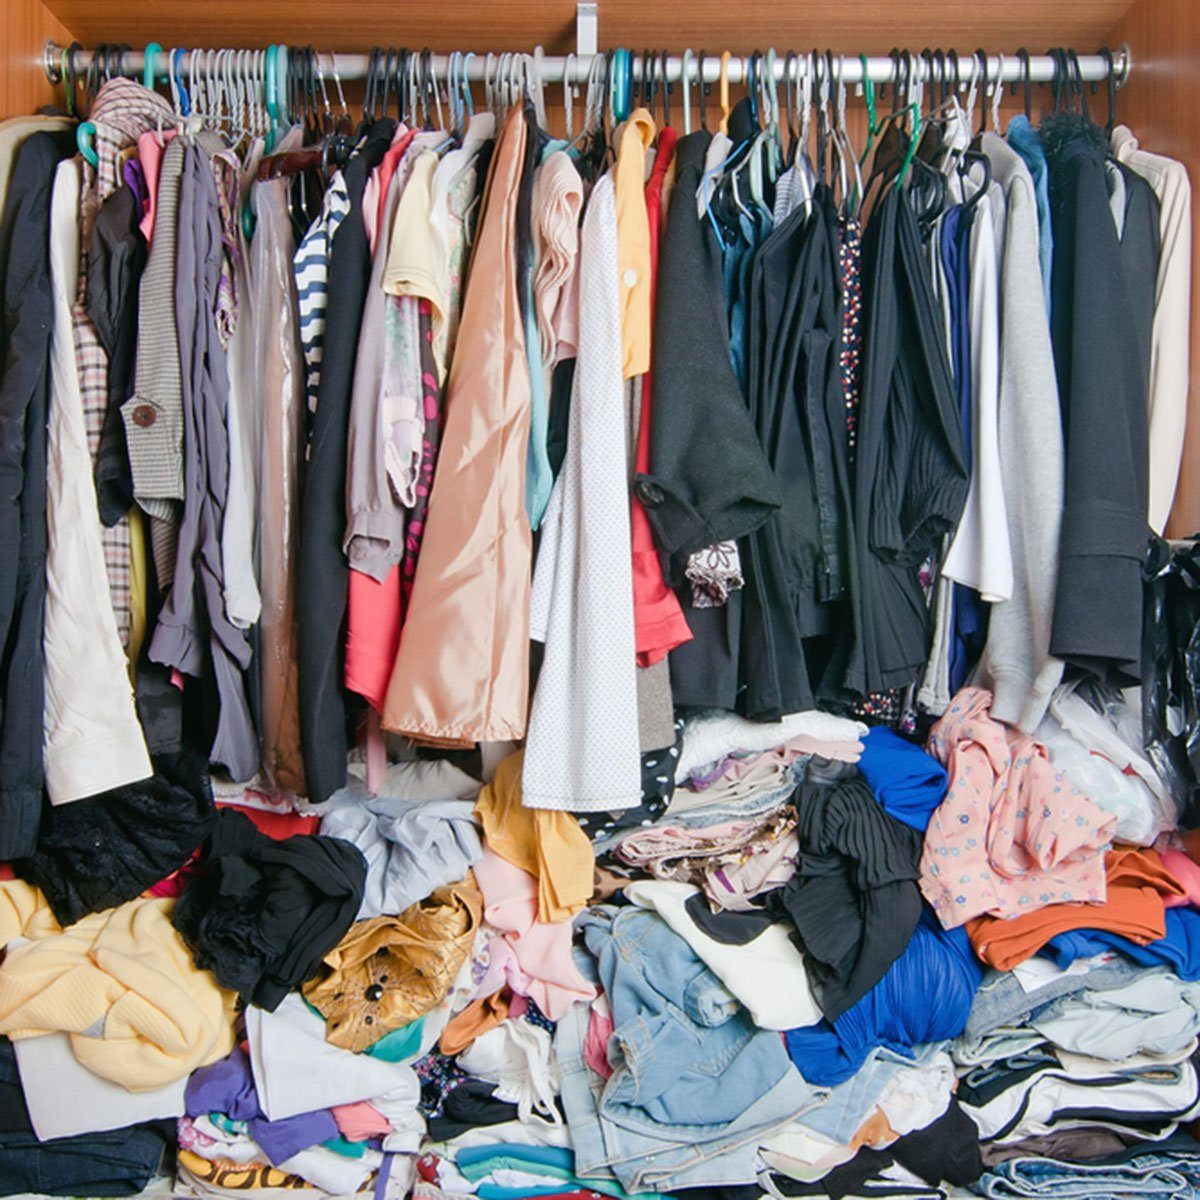 Pile of messy clothes in closet. Untidy cluttered woman wardrobe.; Shutterstock ID 601072265; Job (TFH, TOH, RD, BNB, CWM, CM): Taste of Home